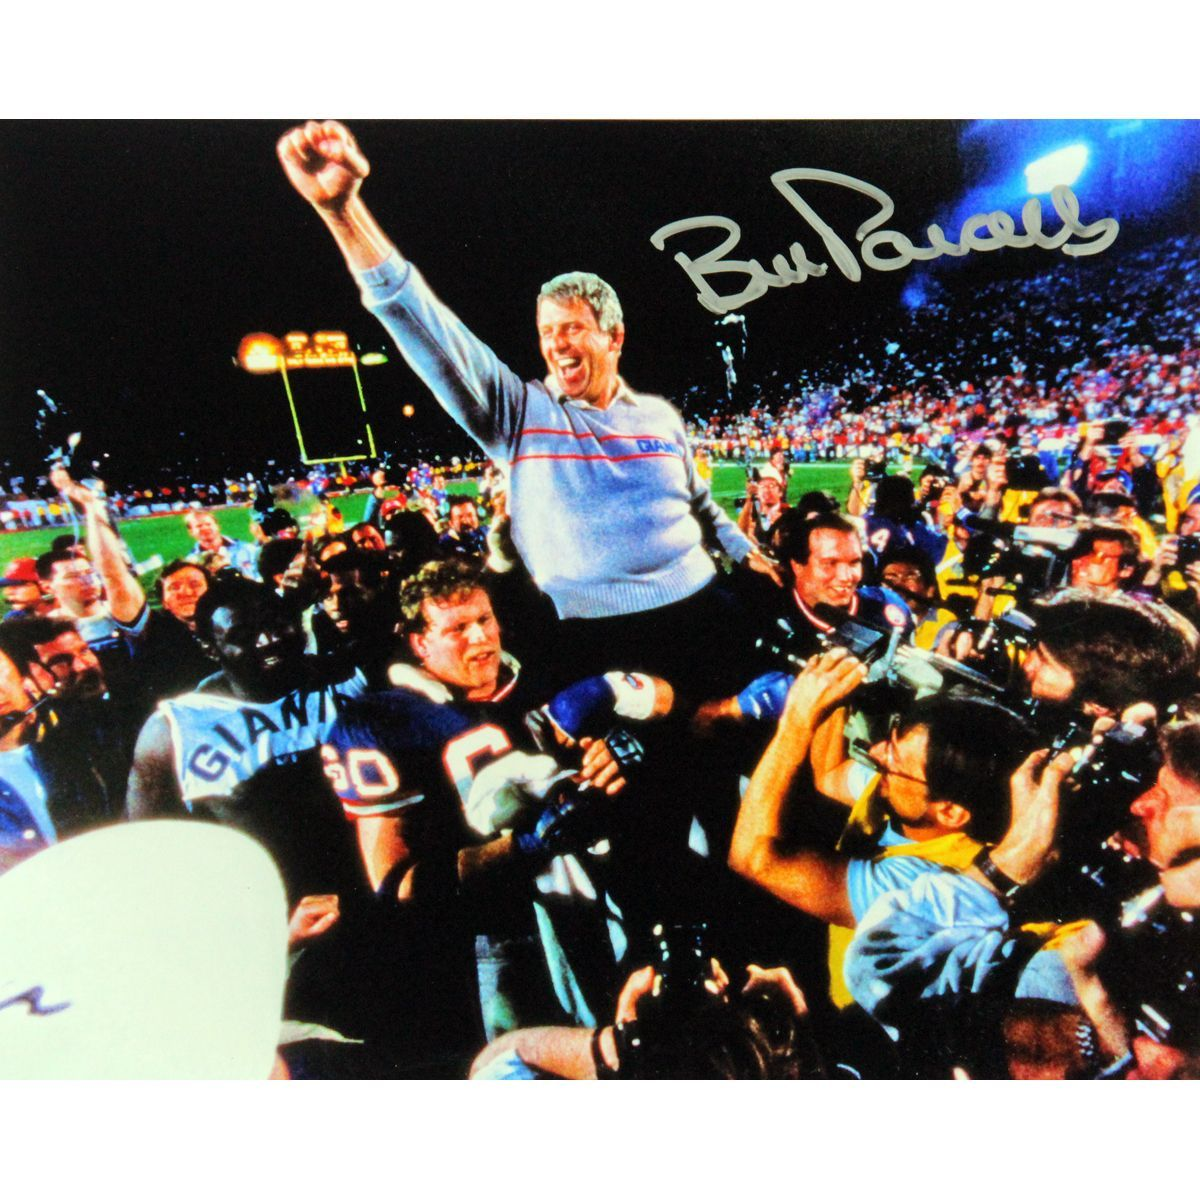 Parcells Giants Sweater